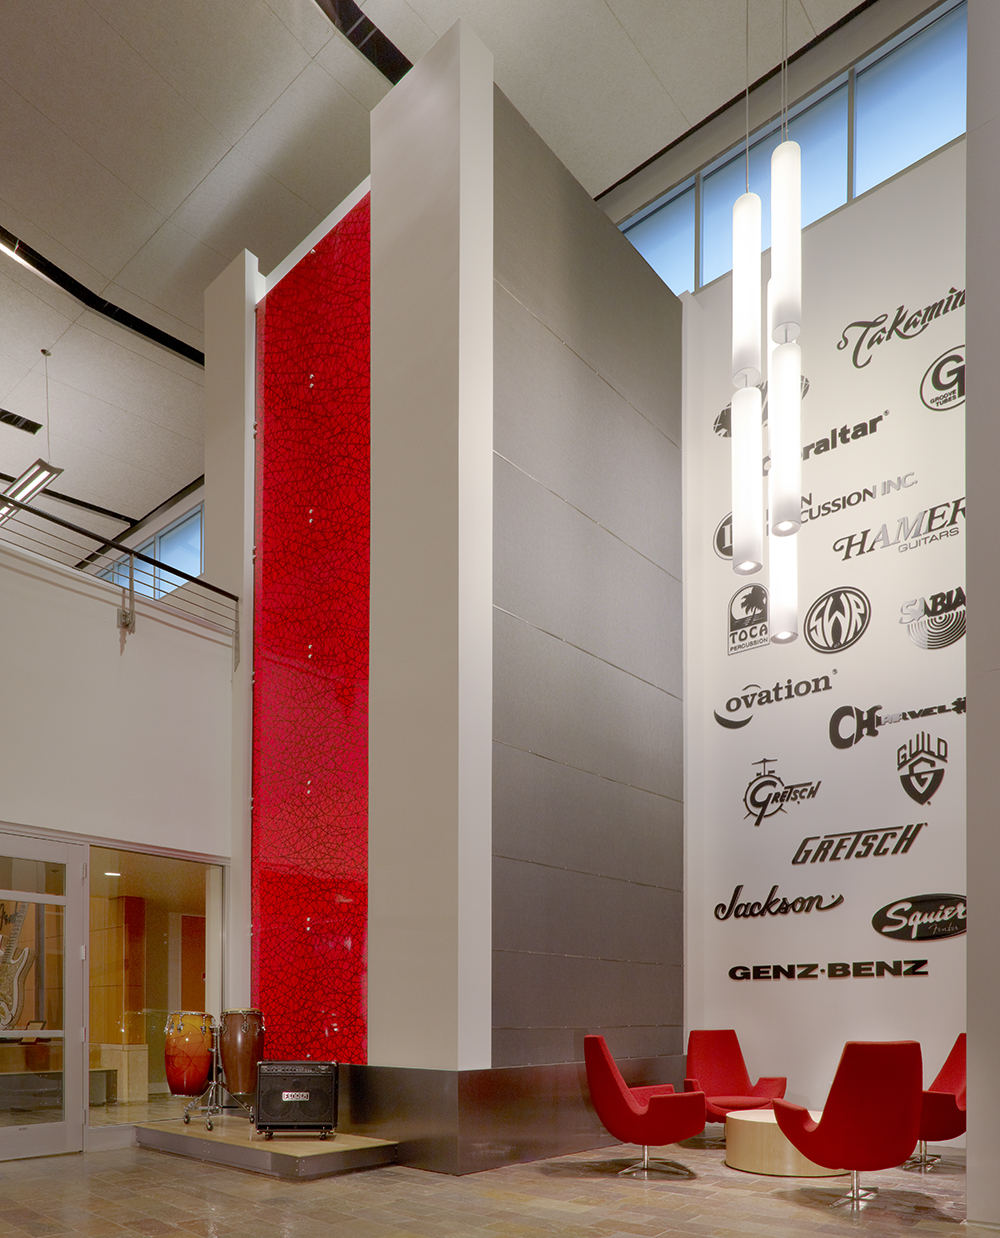 Sequence pendants provide eye-catching illumination in a large light fixture configuration for a high-ceiling lobby above red chairs.